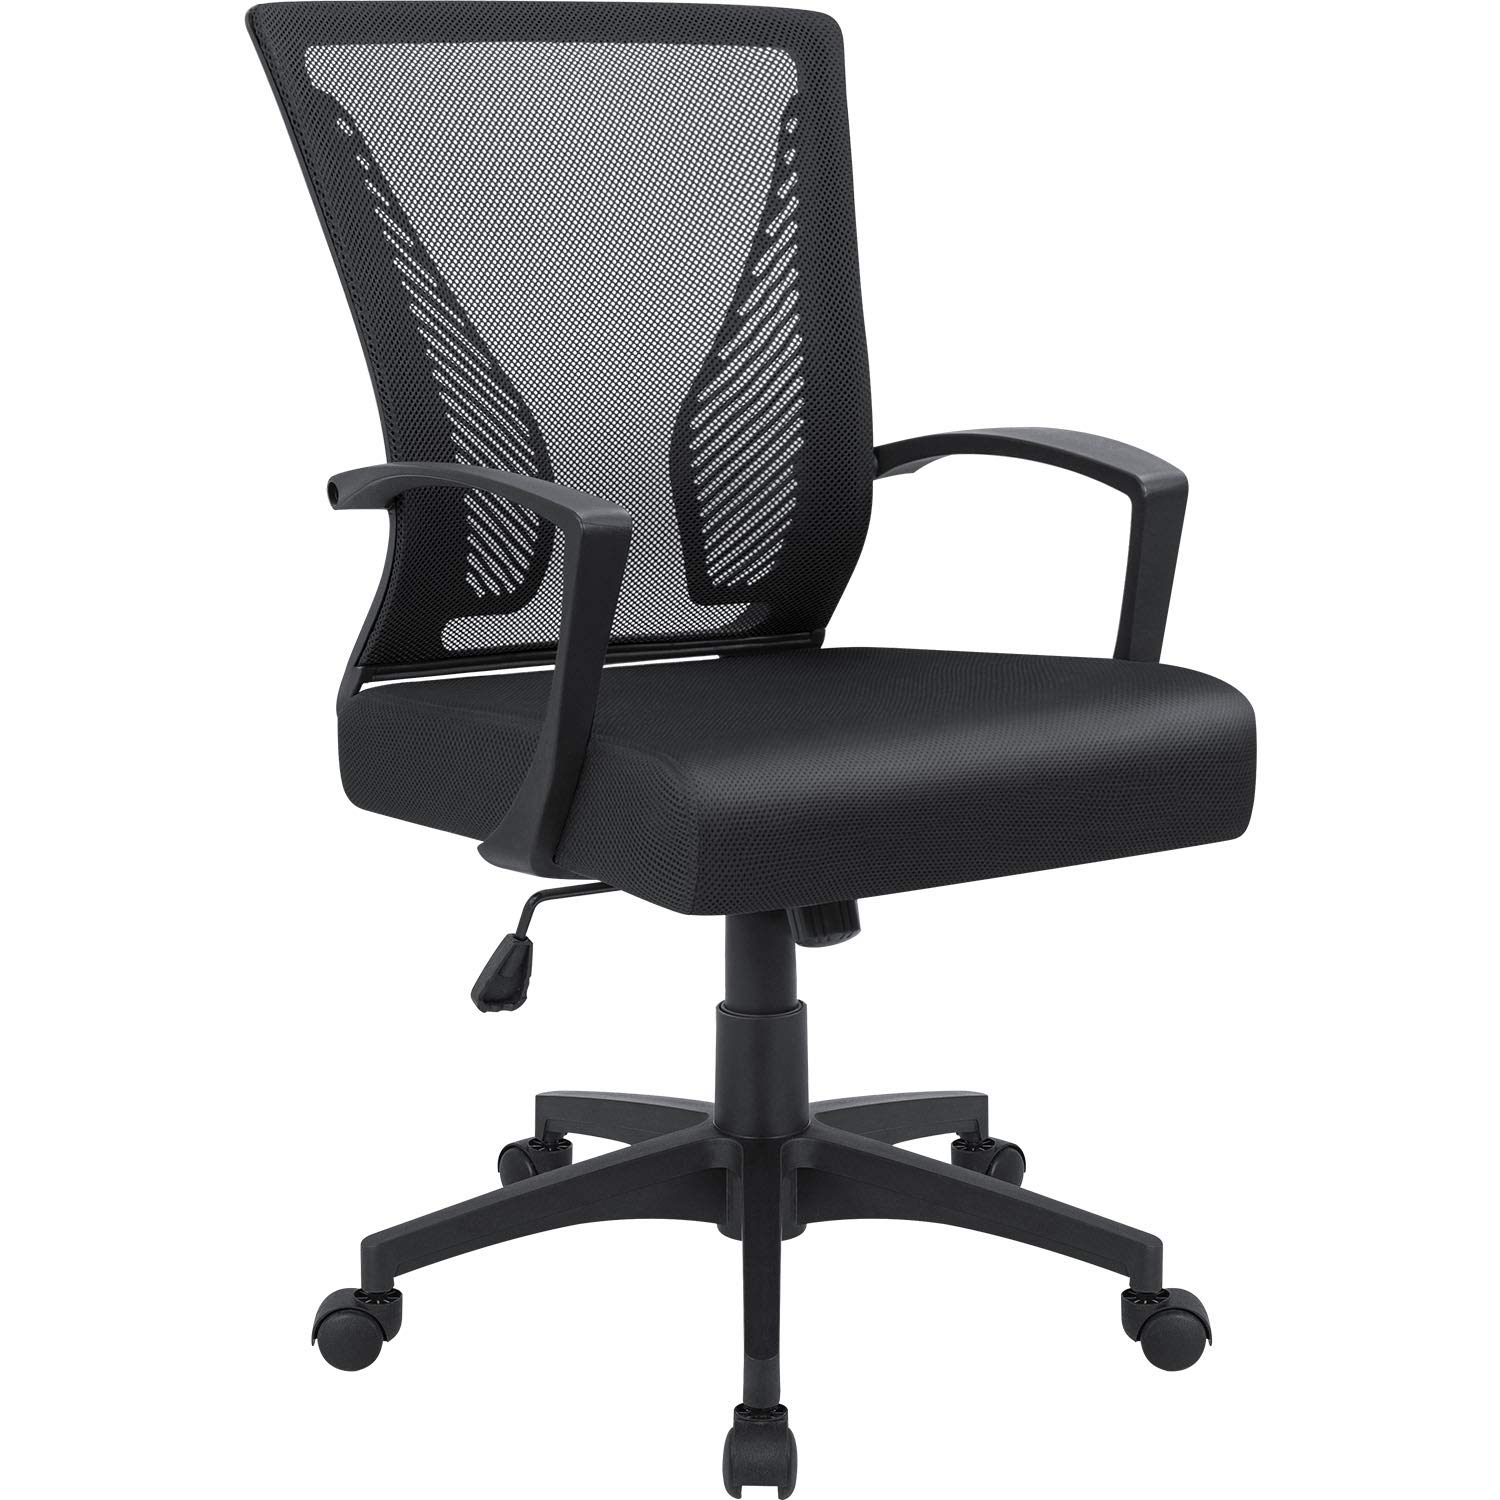 Furmax Office Chair Mid Back Swivel Lumbar Support Desk Chair, Computer Ergonomic Mesh Chair with Armrest (Black) by Furmax